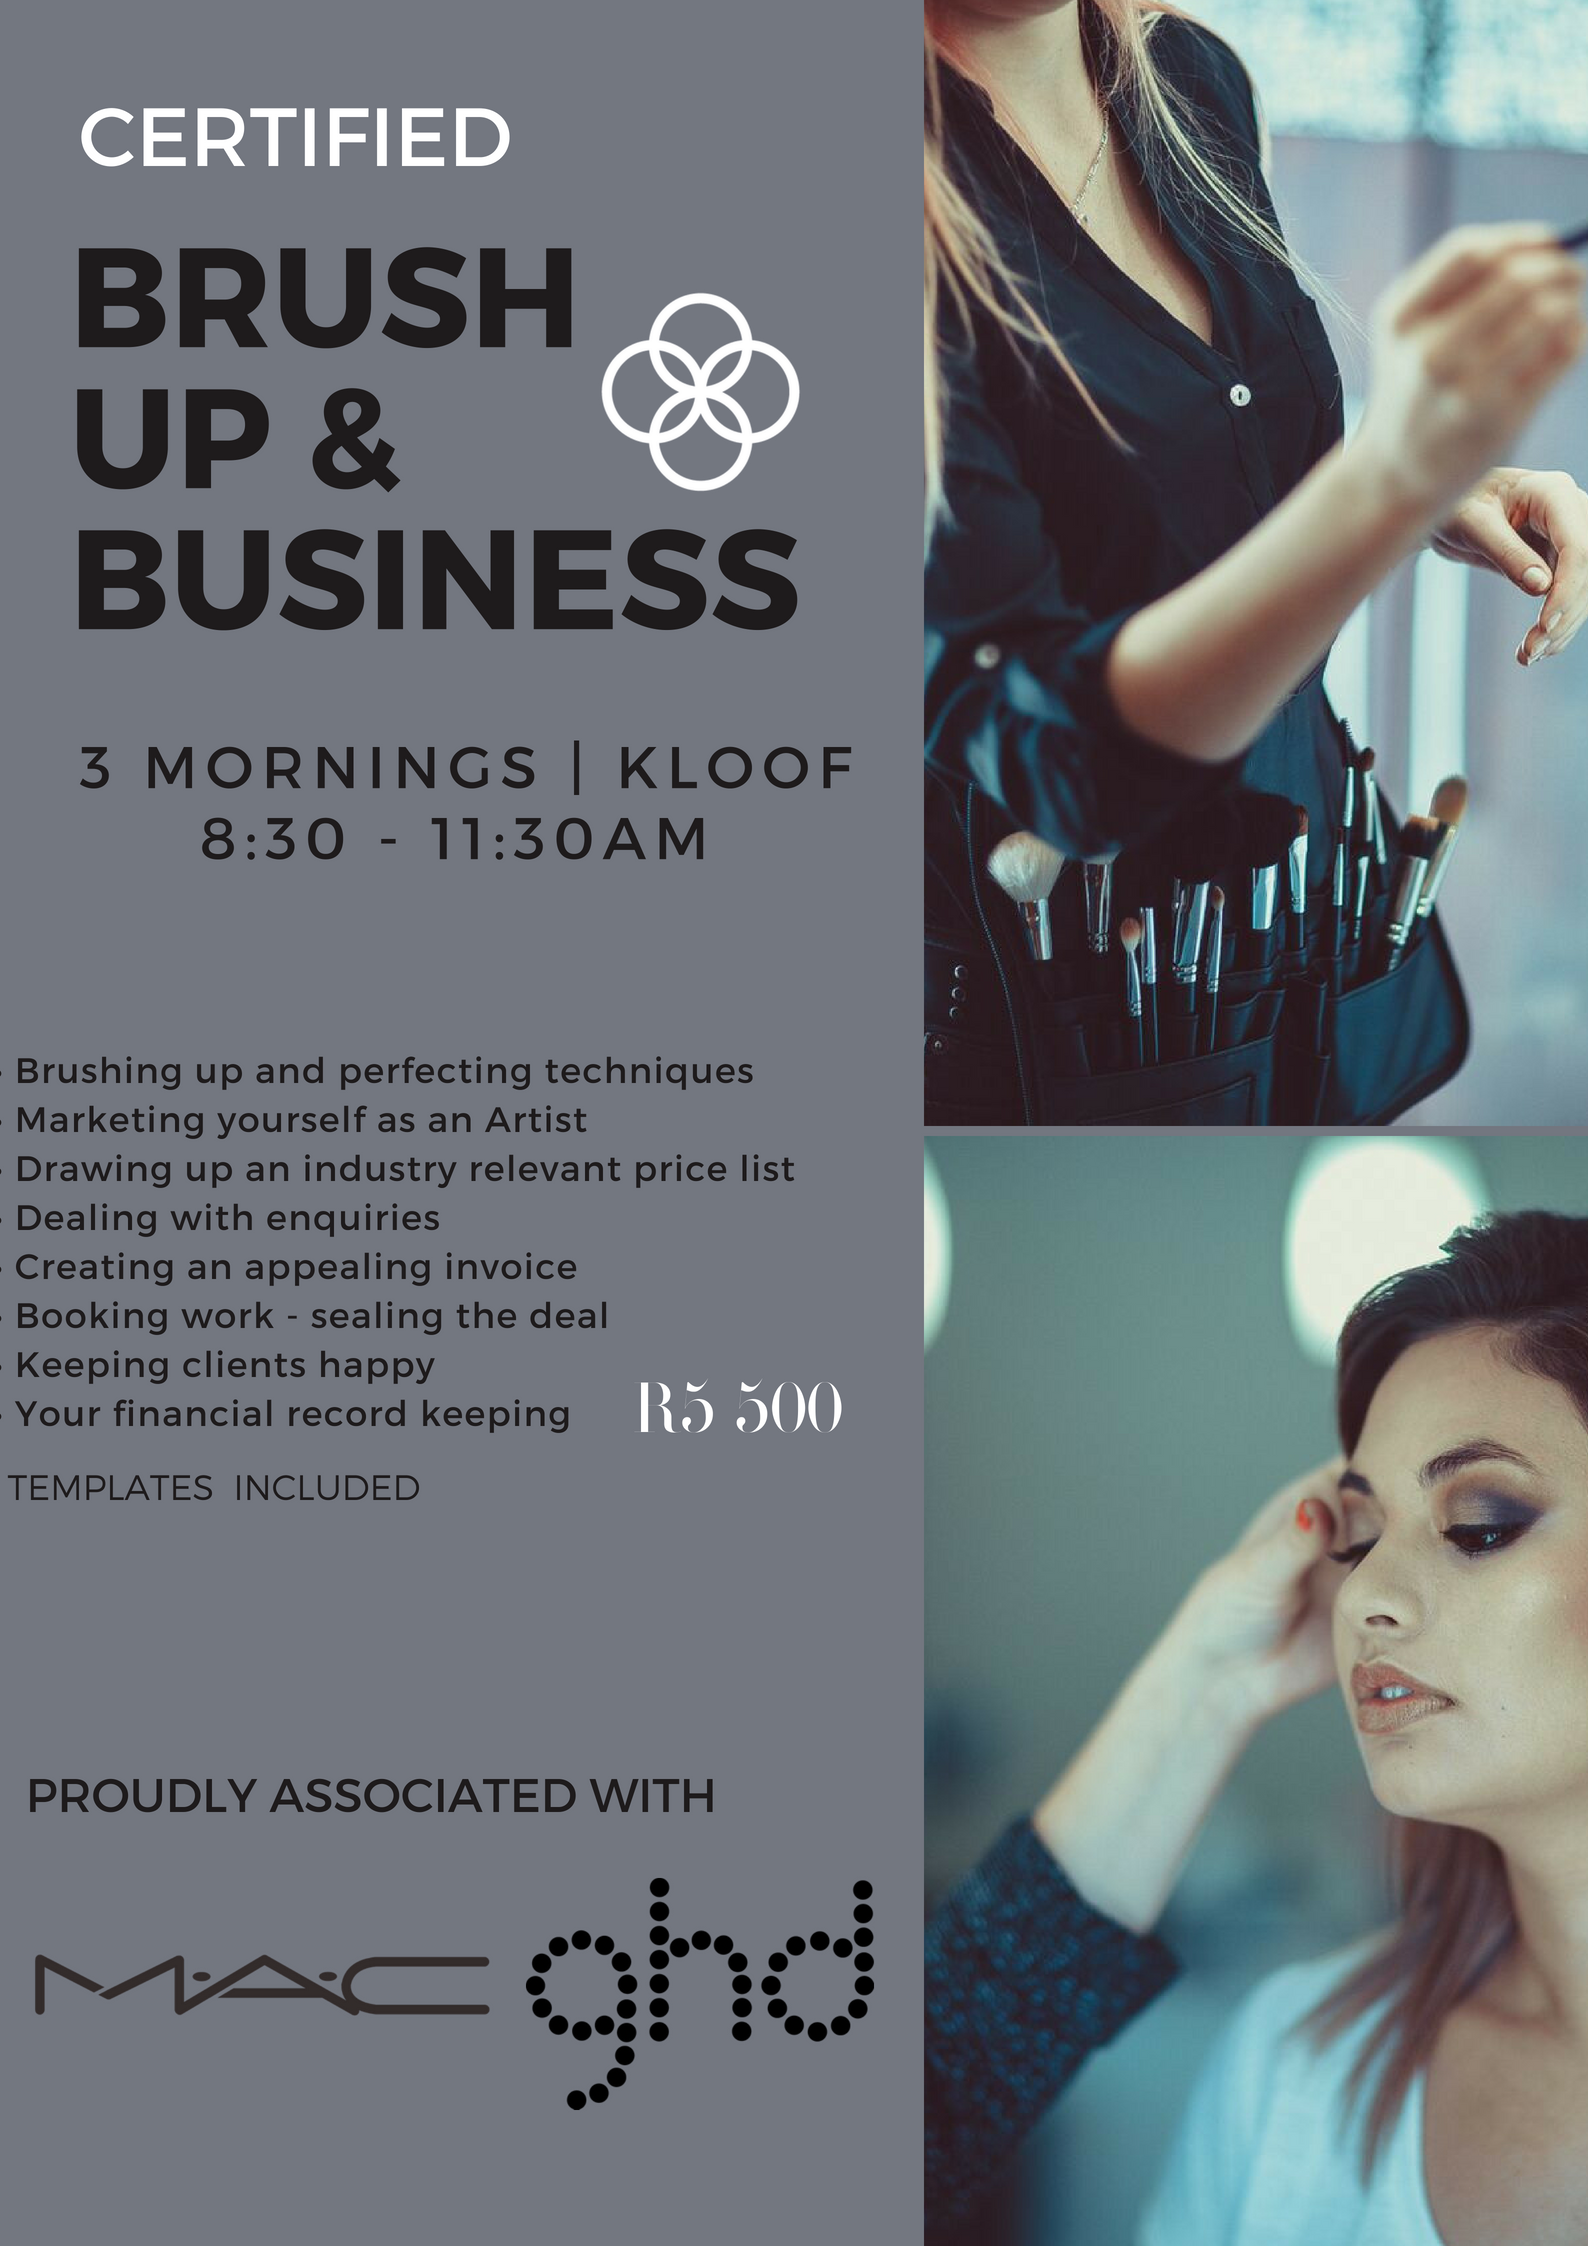 Business Course Durban South Africa Makeup Course Bridal Hair And Makeup Business Courses